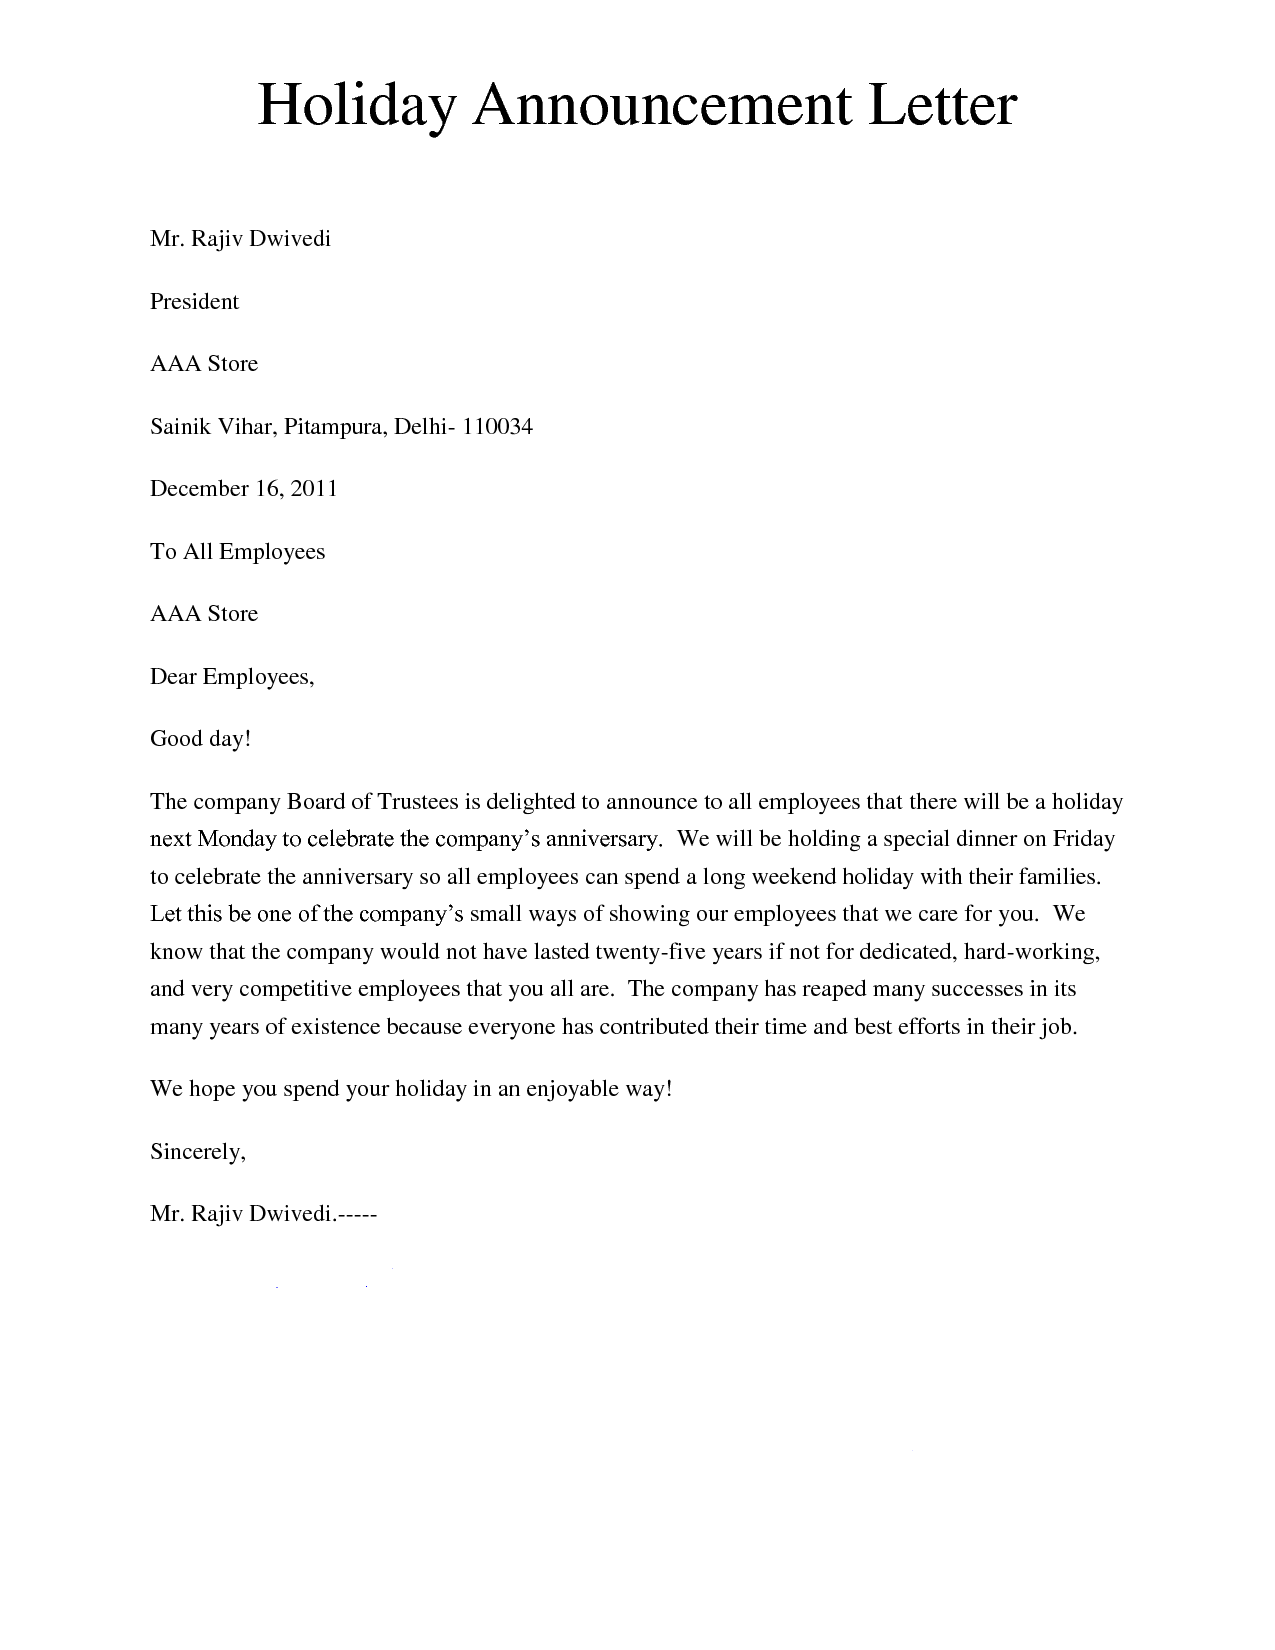 Philanthropy Resume Examples Holiday Announcement Letter Giving A Letter To Inform